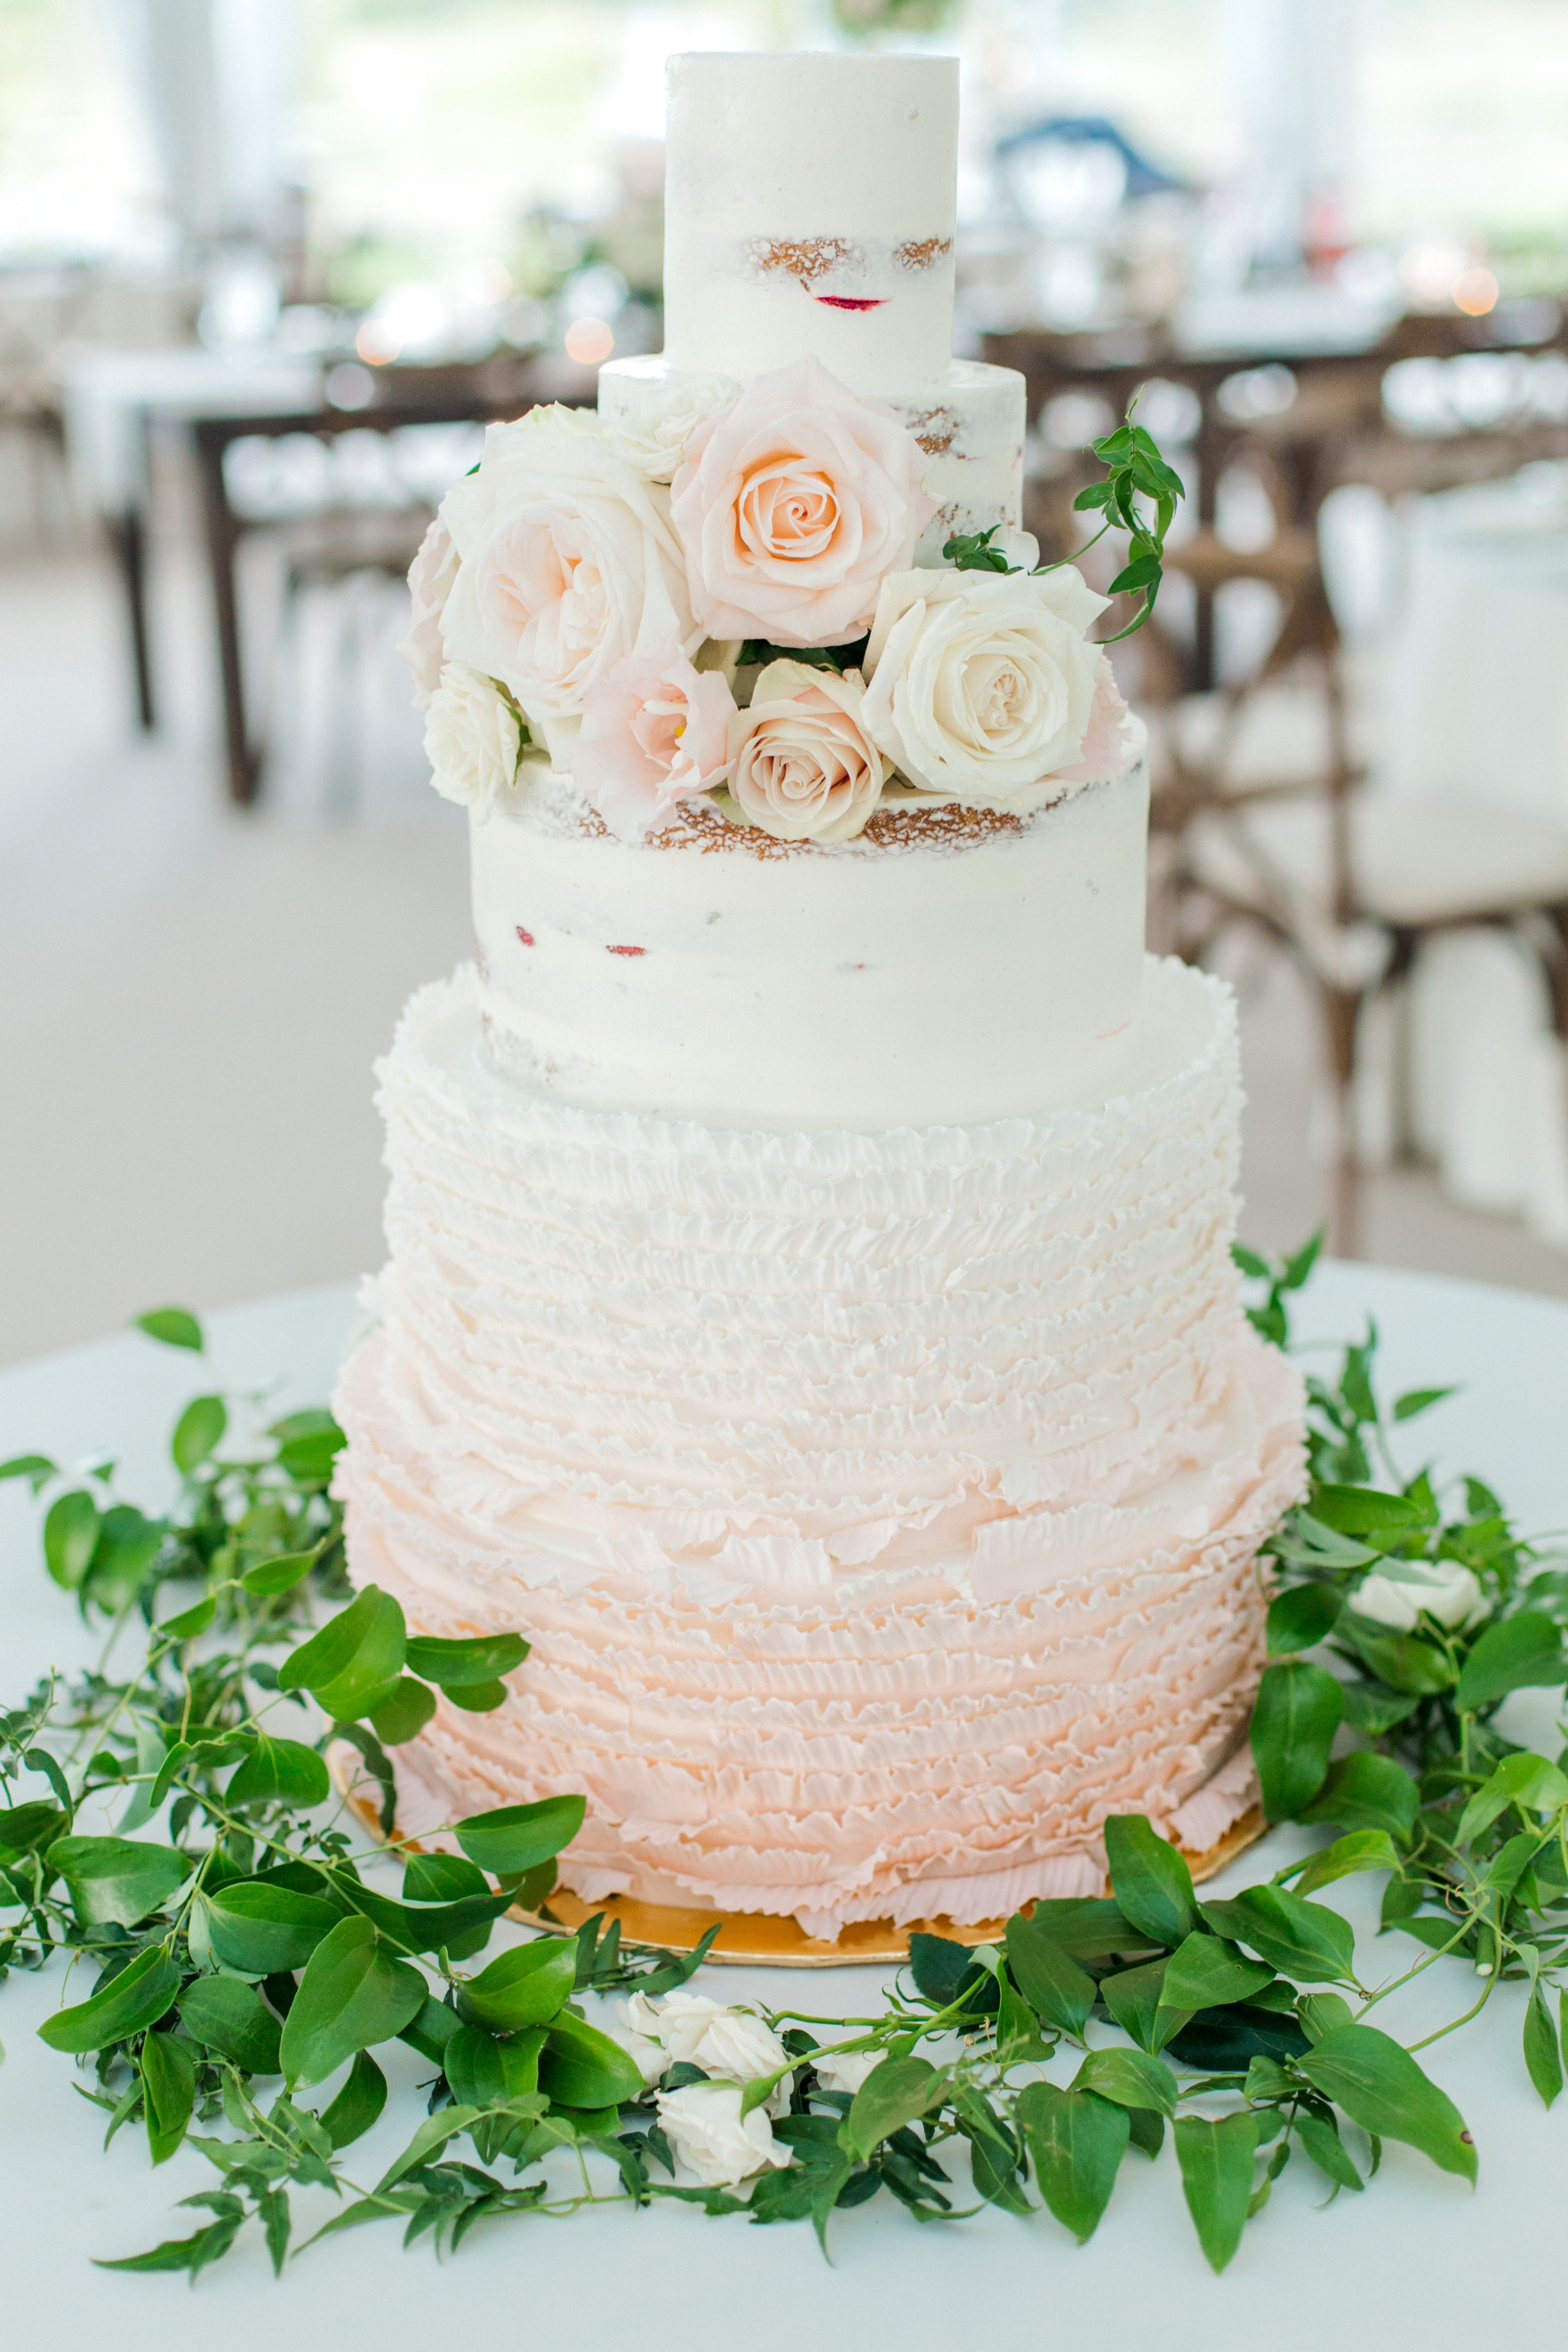 Naked cake with Ruffles and Roses